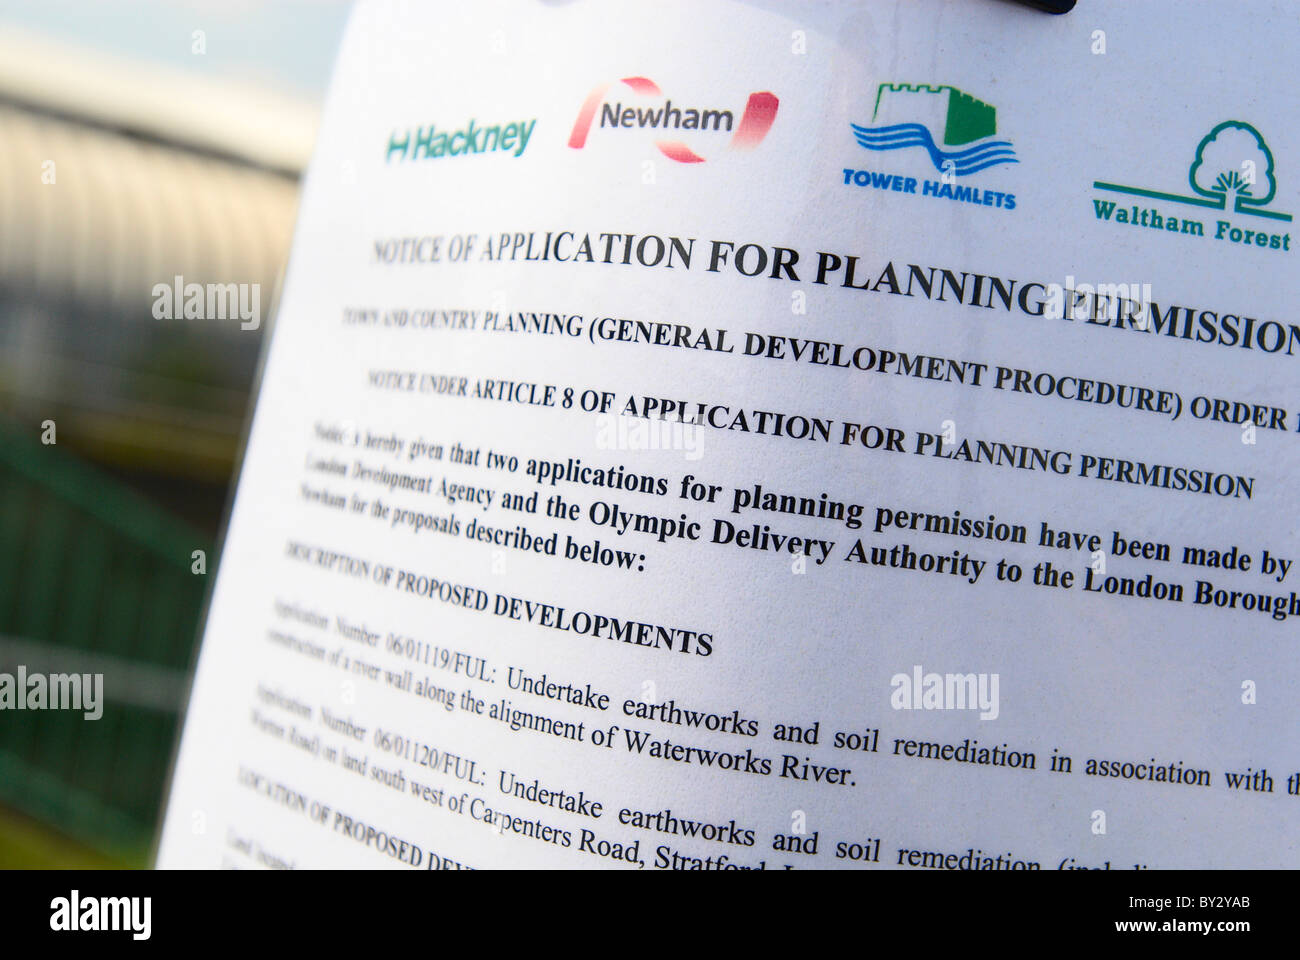 Notice of Application for Planning Permission at Olympic site East London UK - Stock Image